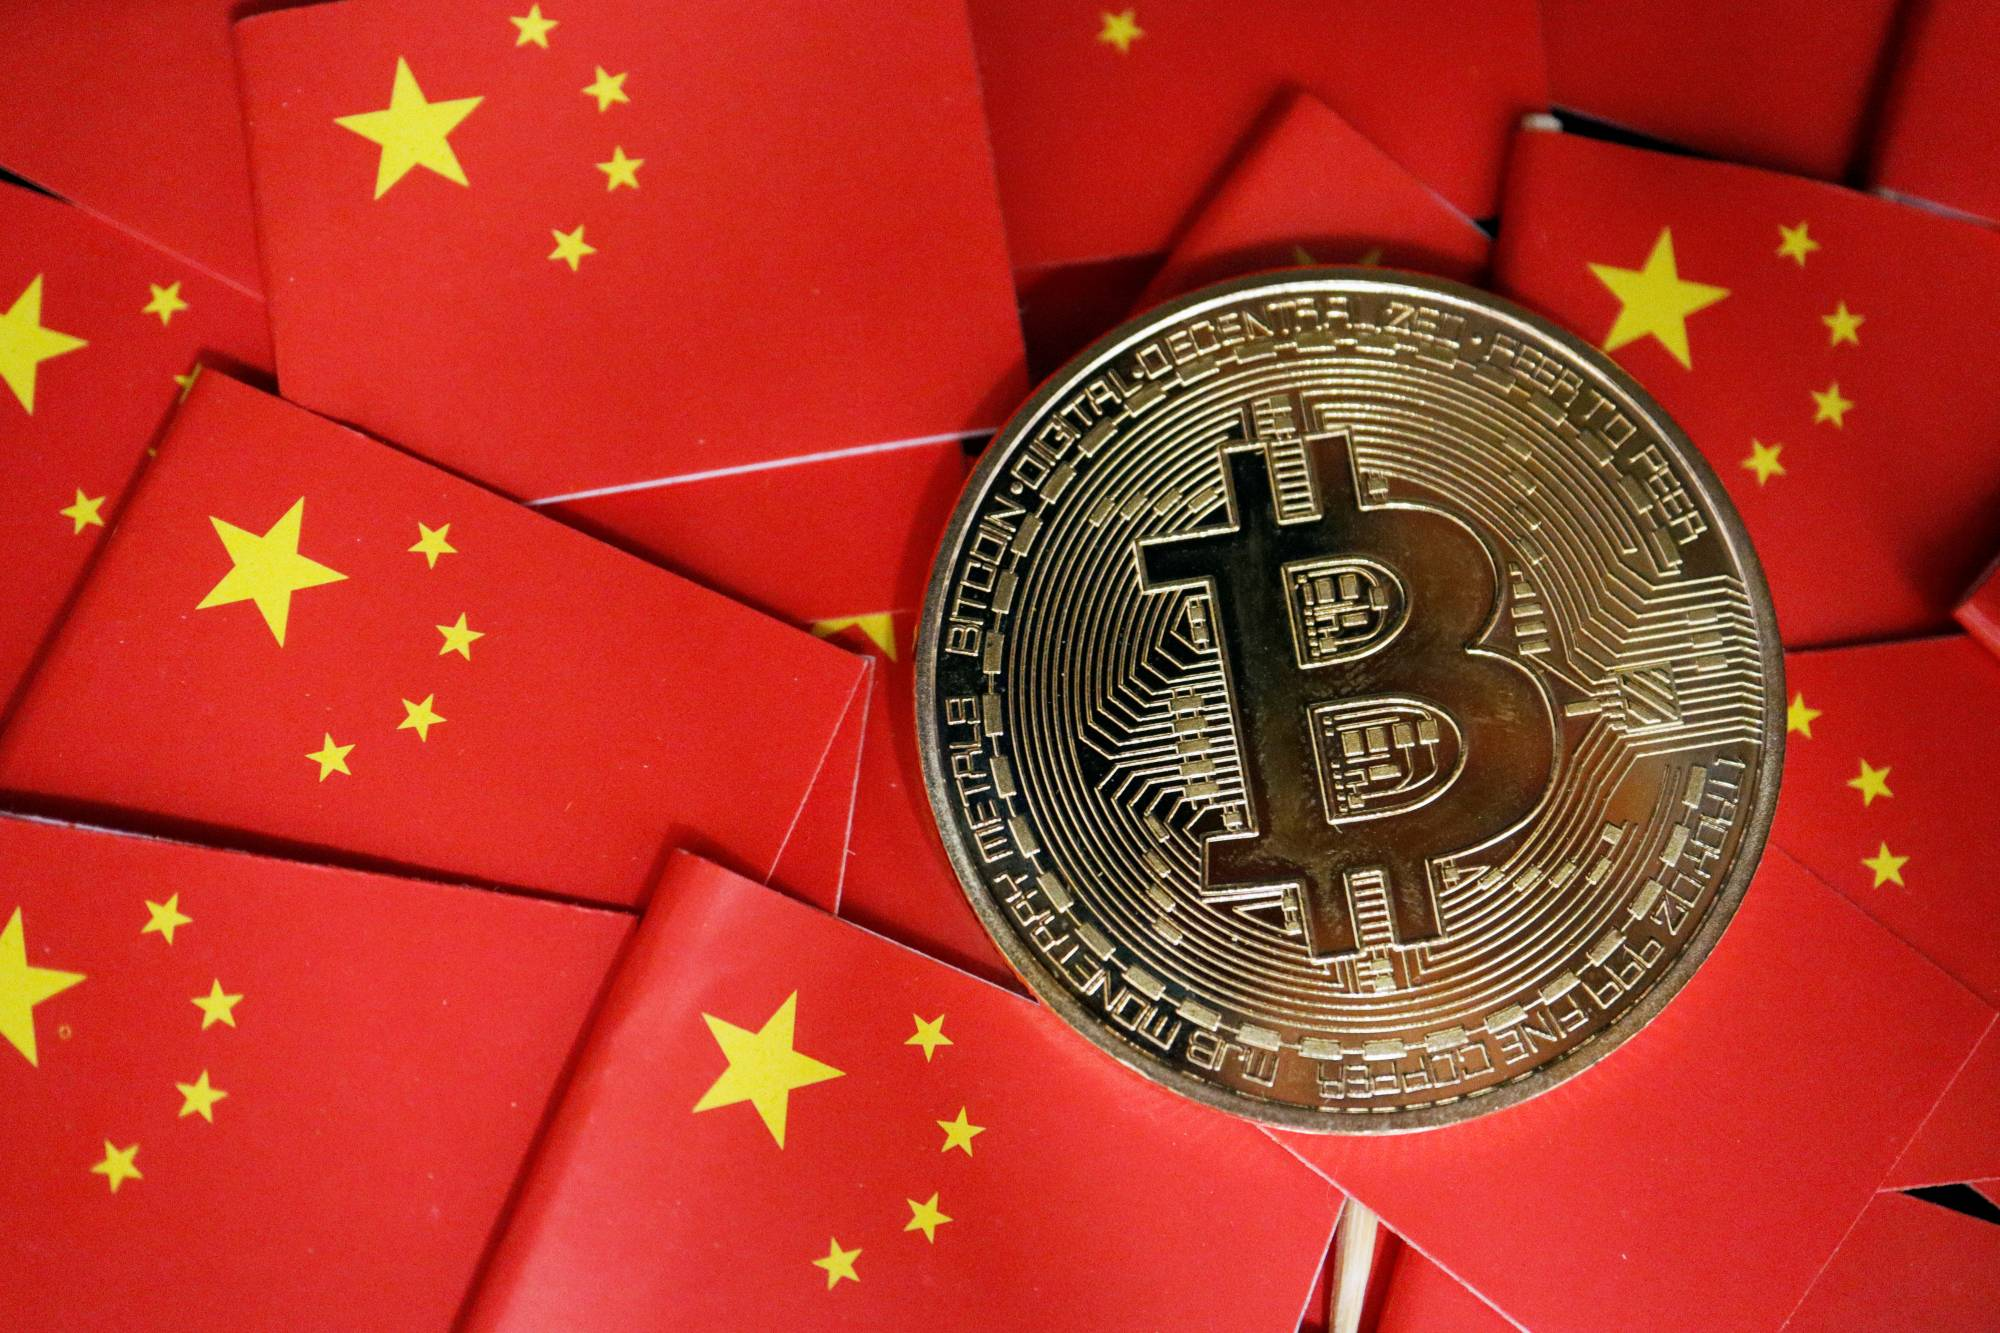 Despite Chinese Ban, 145 Bitcoin Nodes Are Still Running There